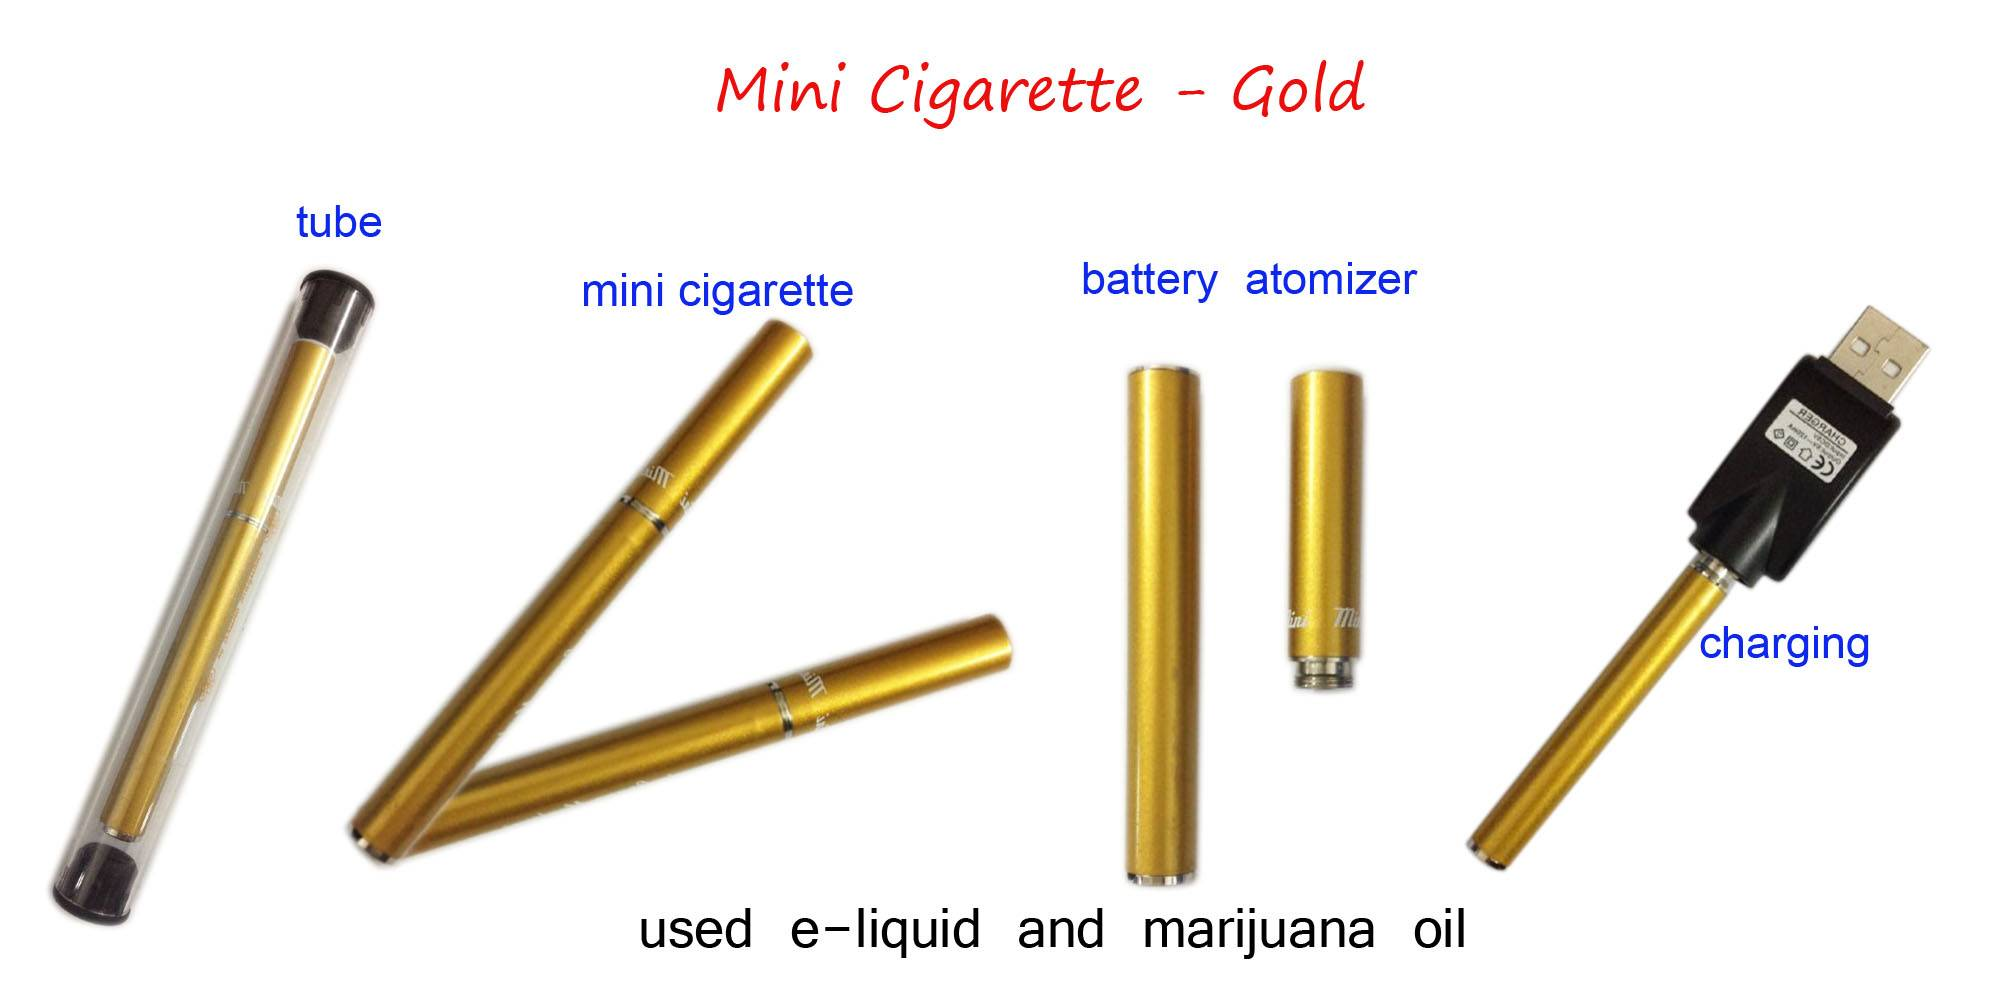 Gold mini-cigarette